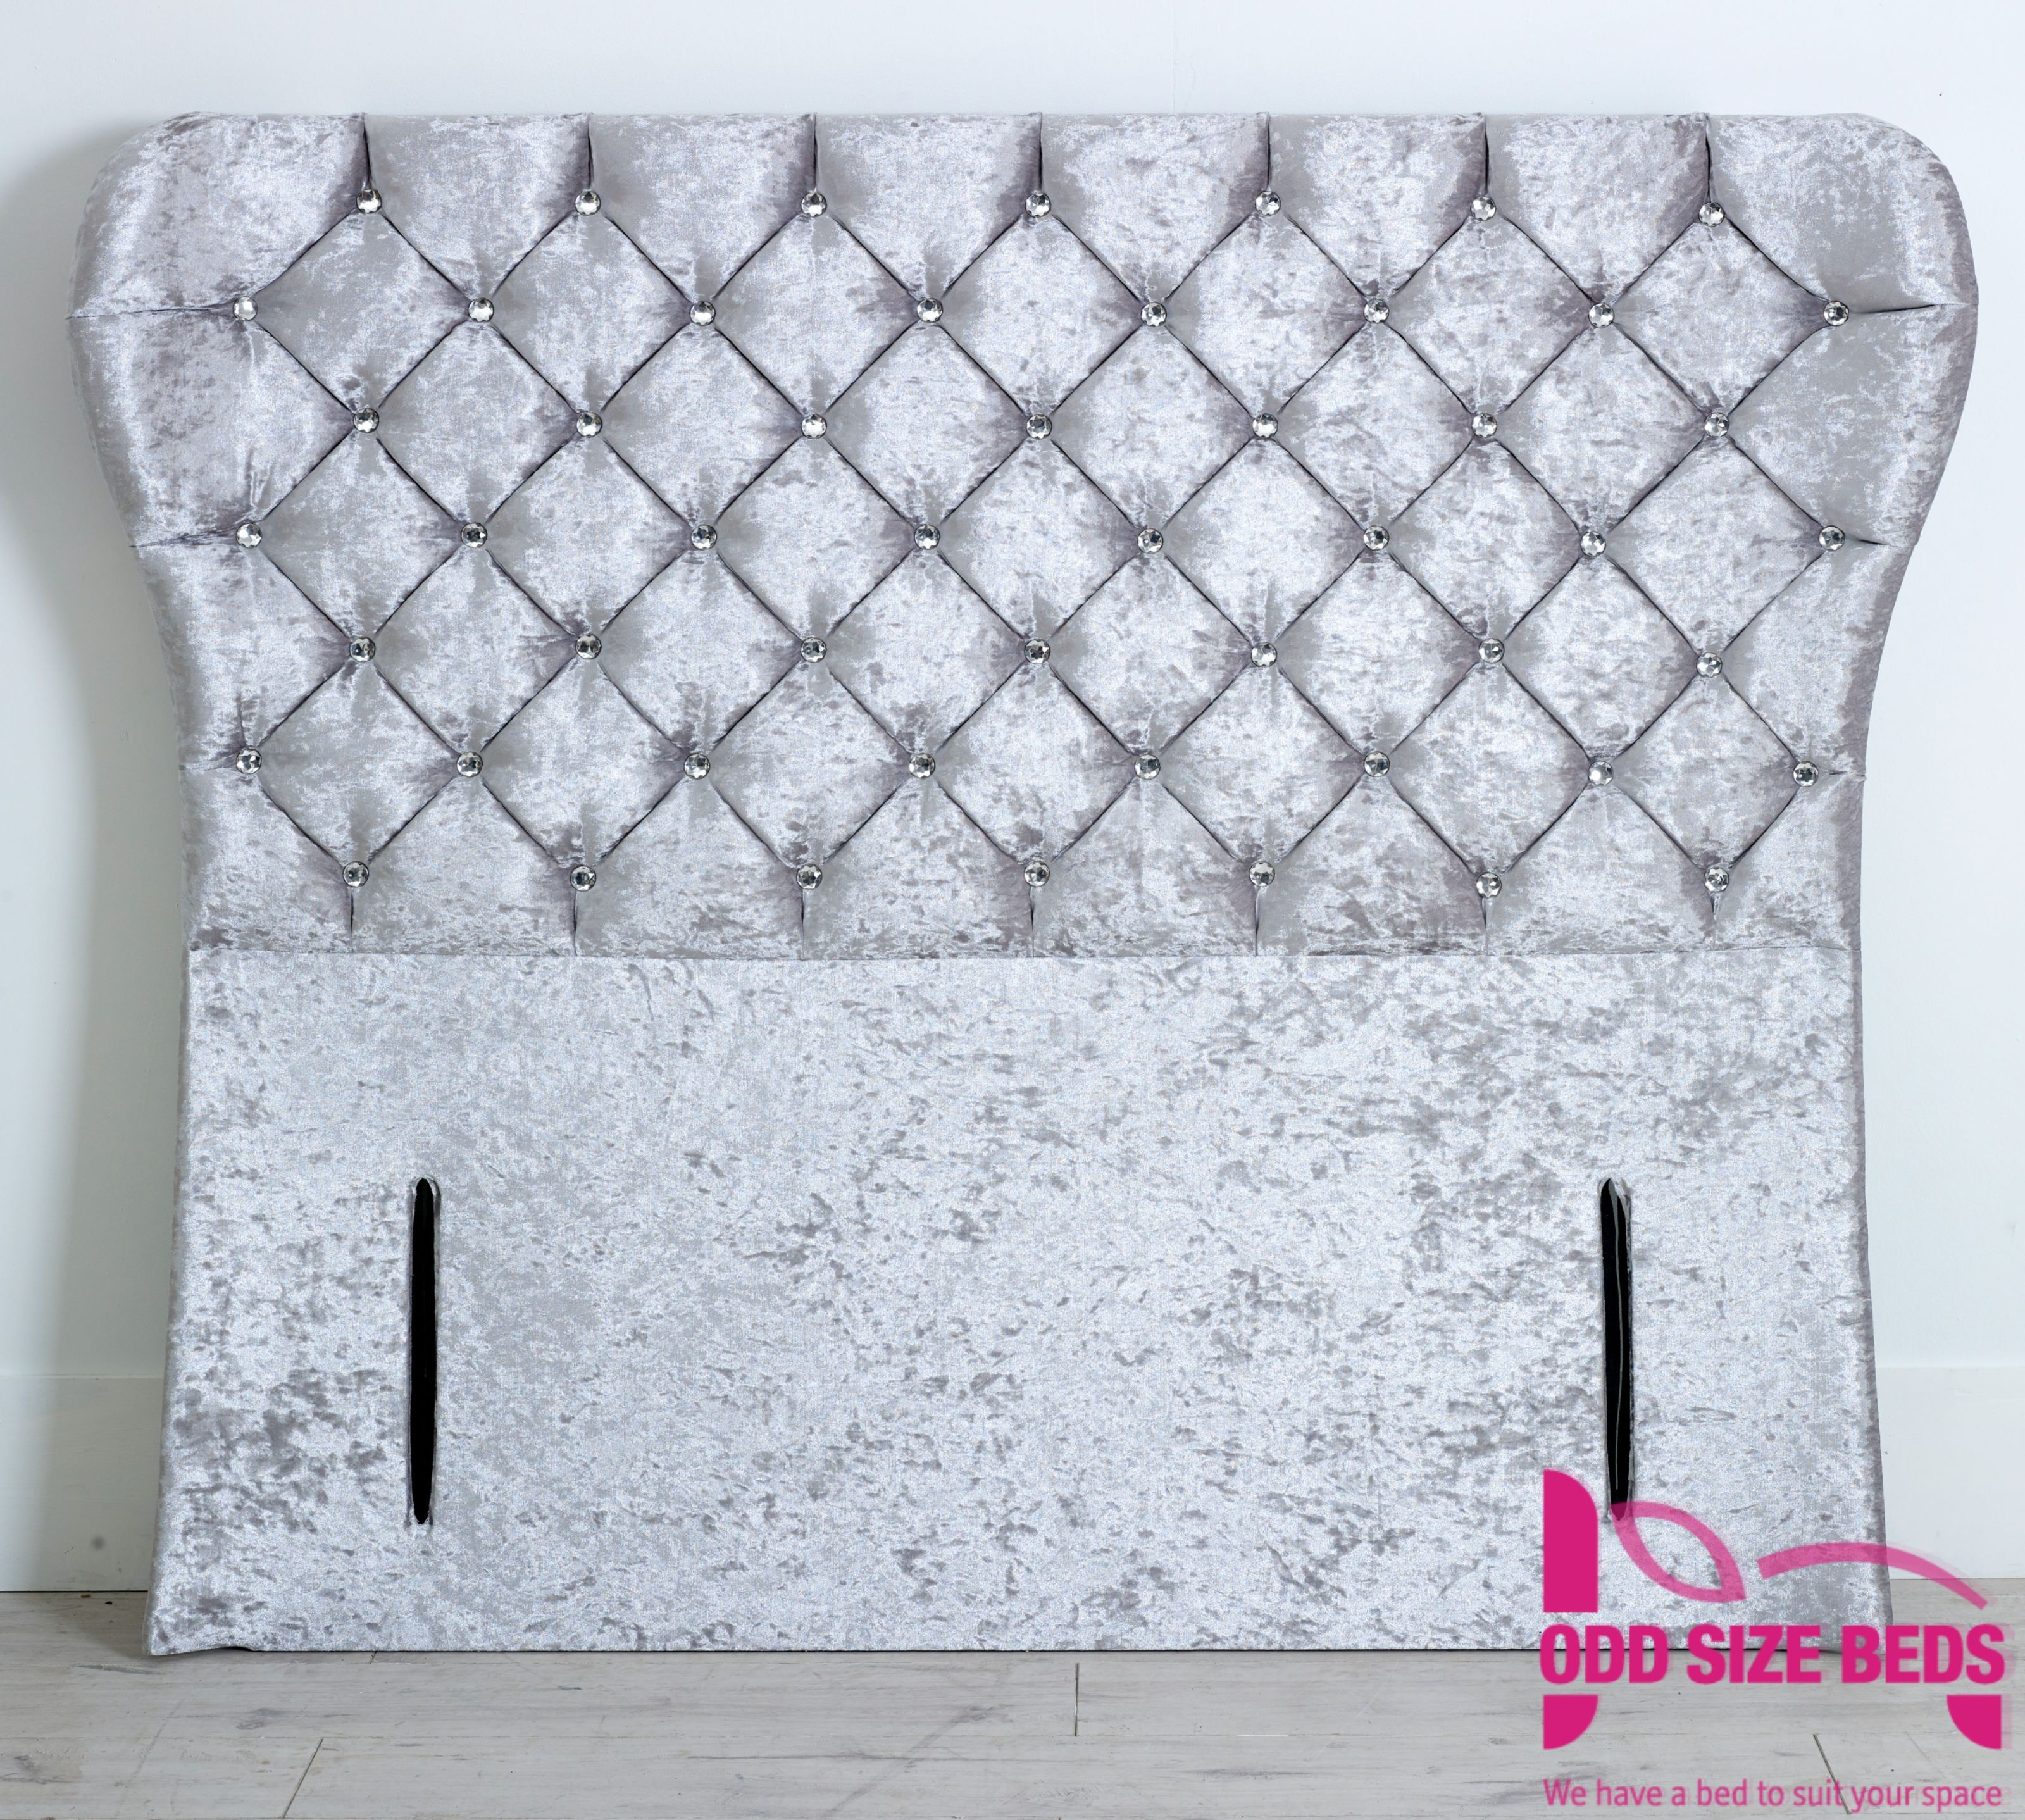 Made to Measure Impression Winged Headboard